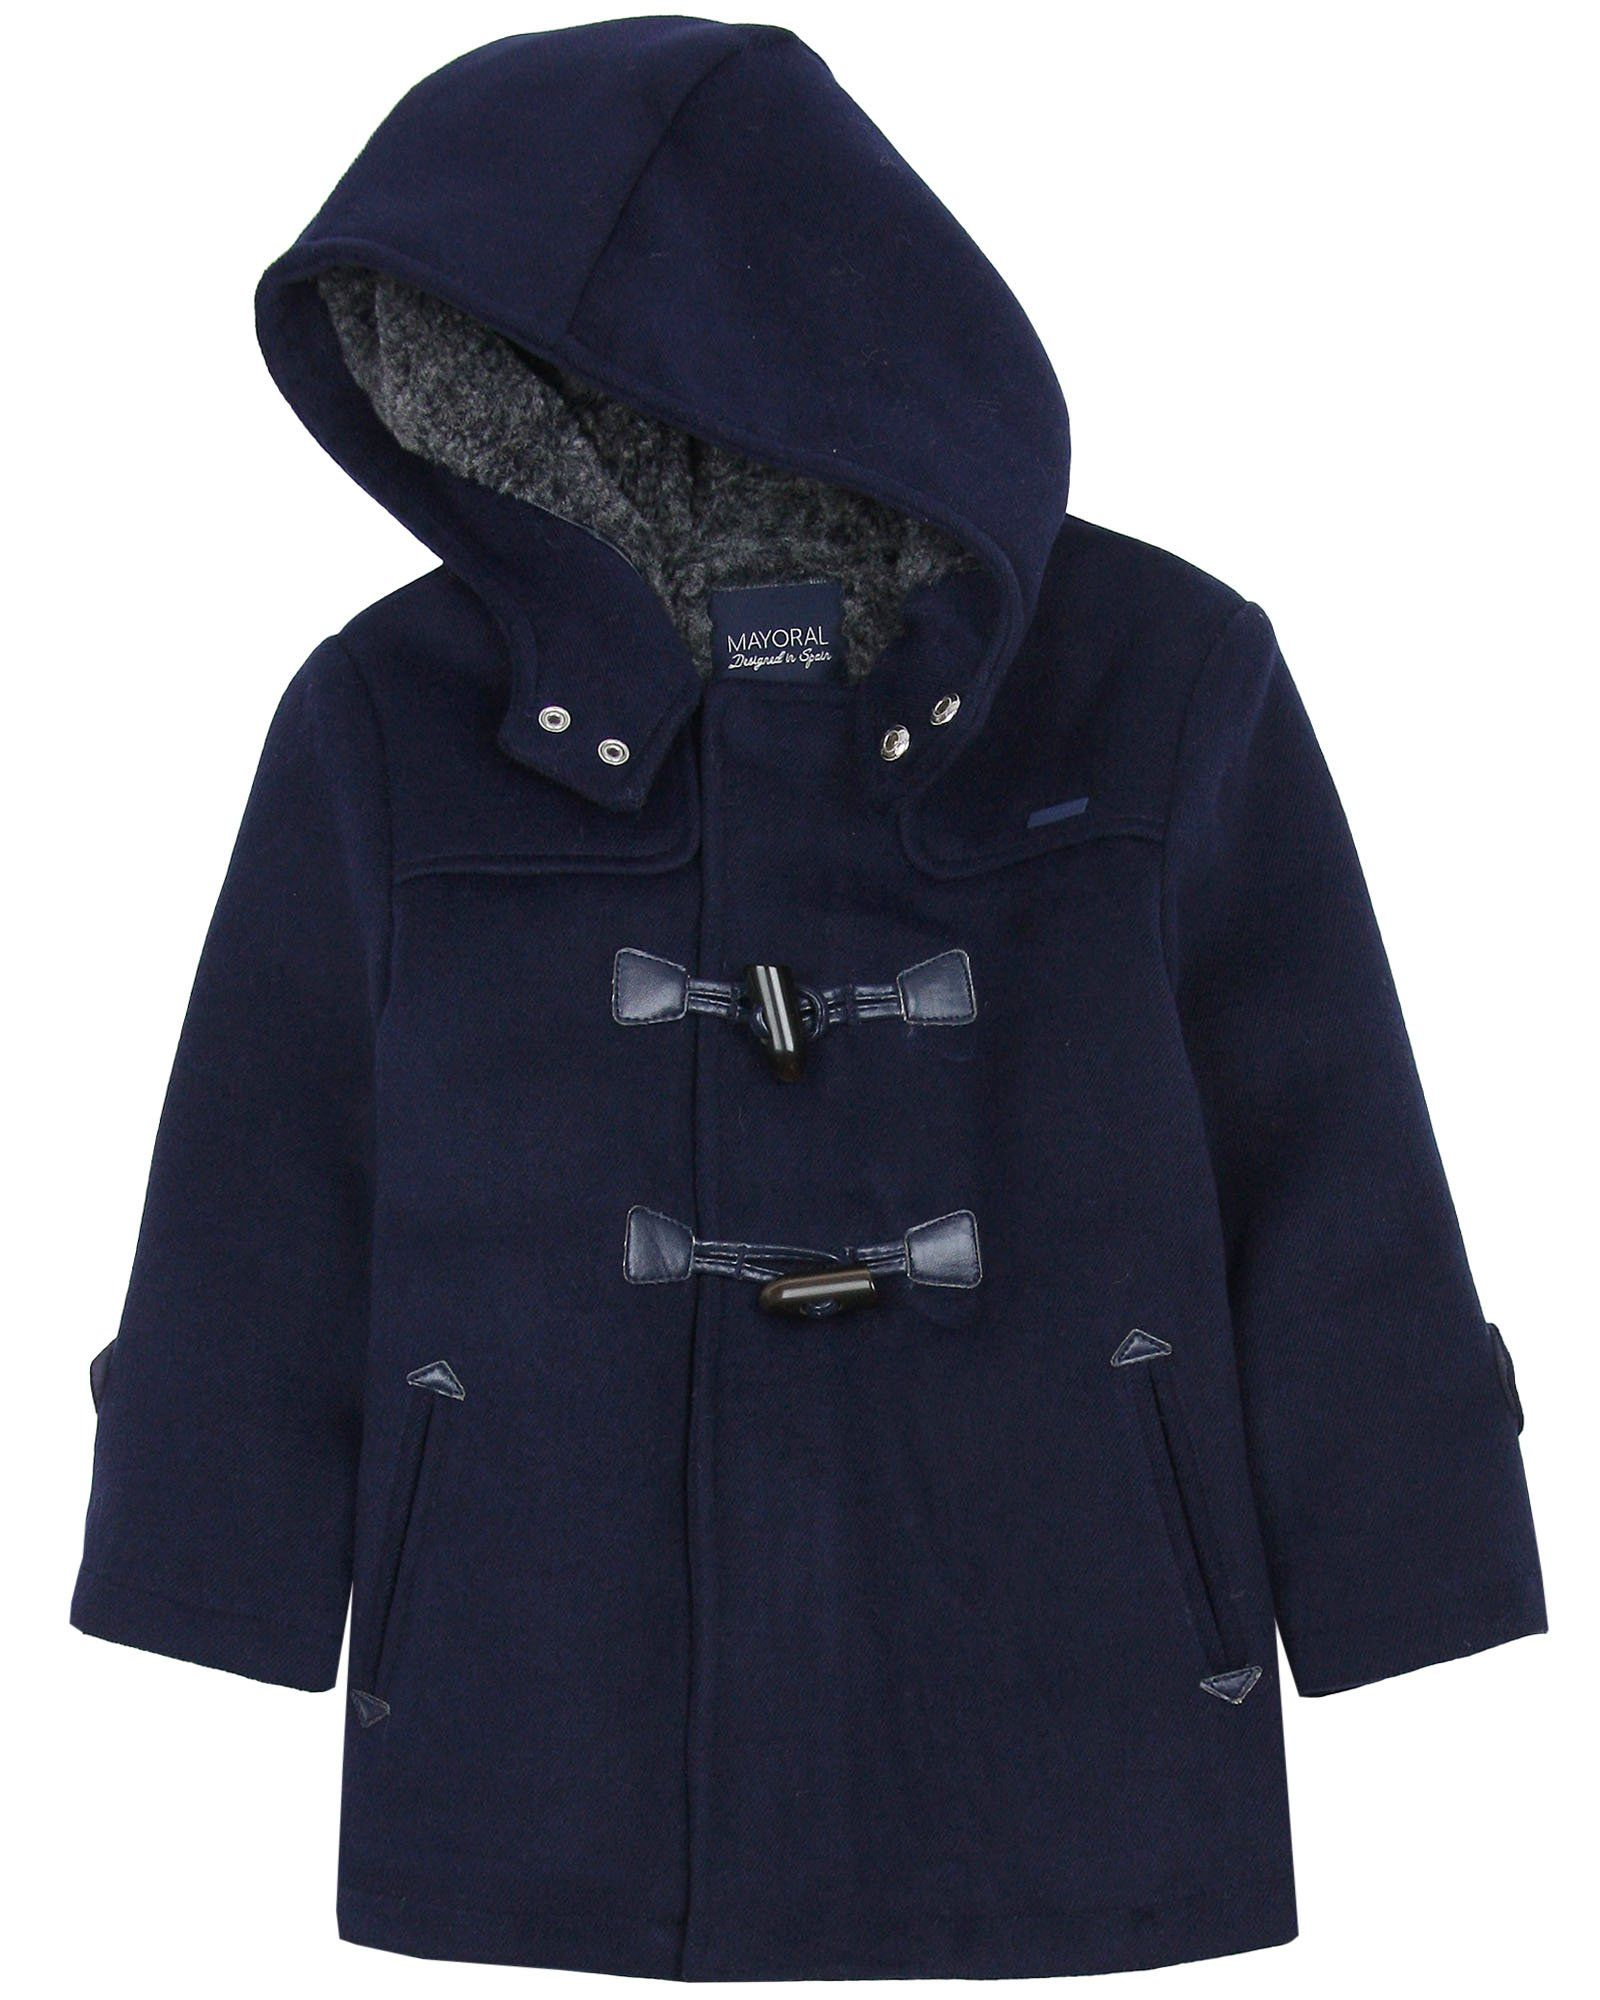 ae05f3026 Mayoral Boy s Duffle Coat